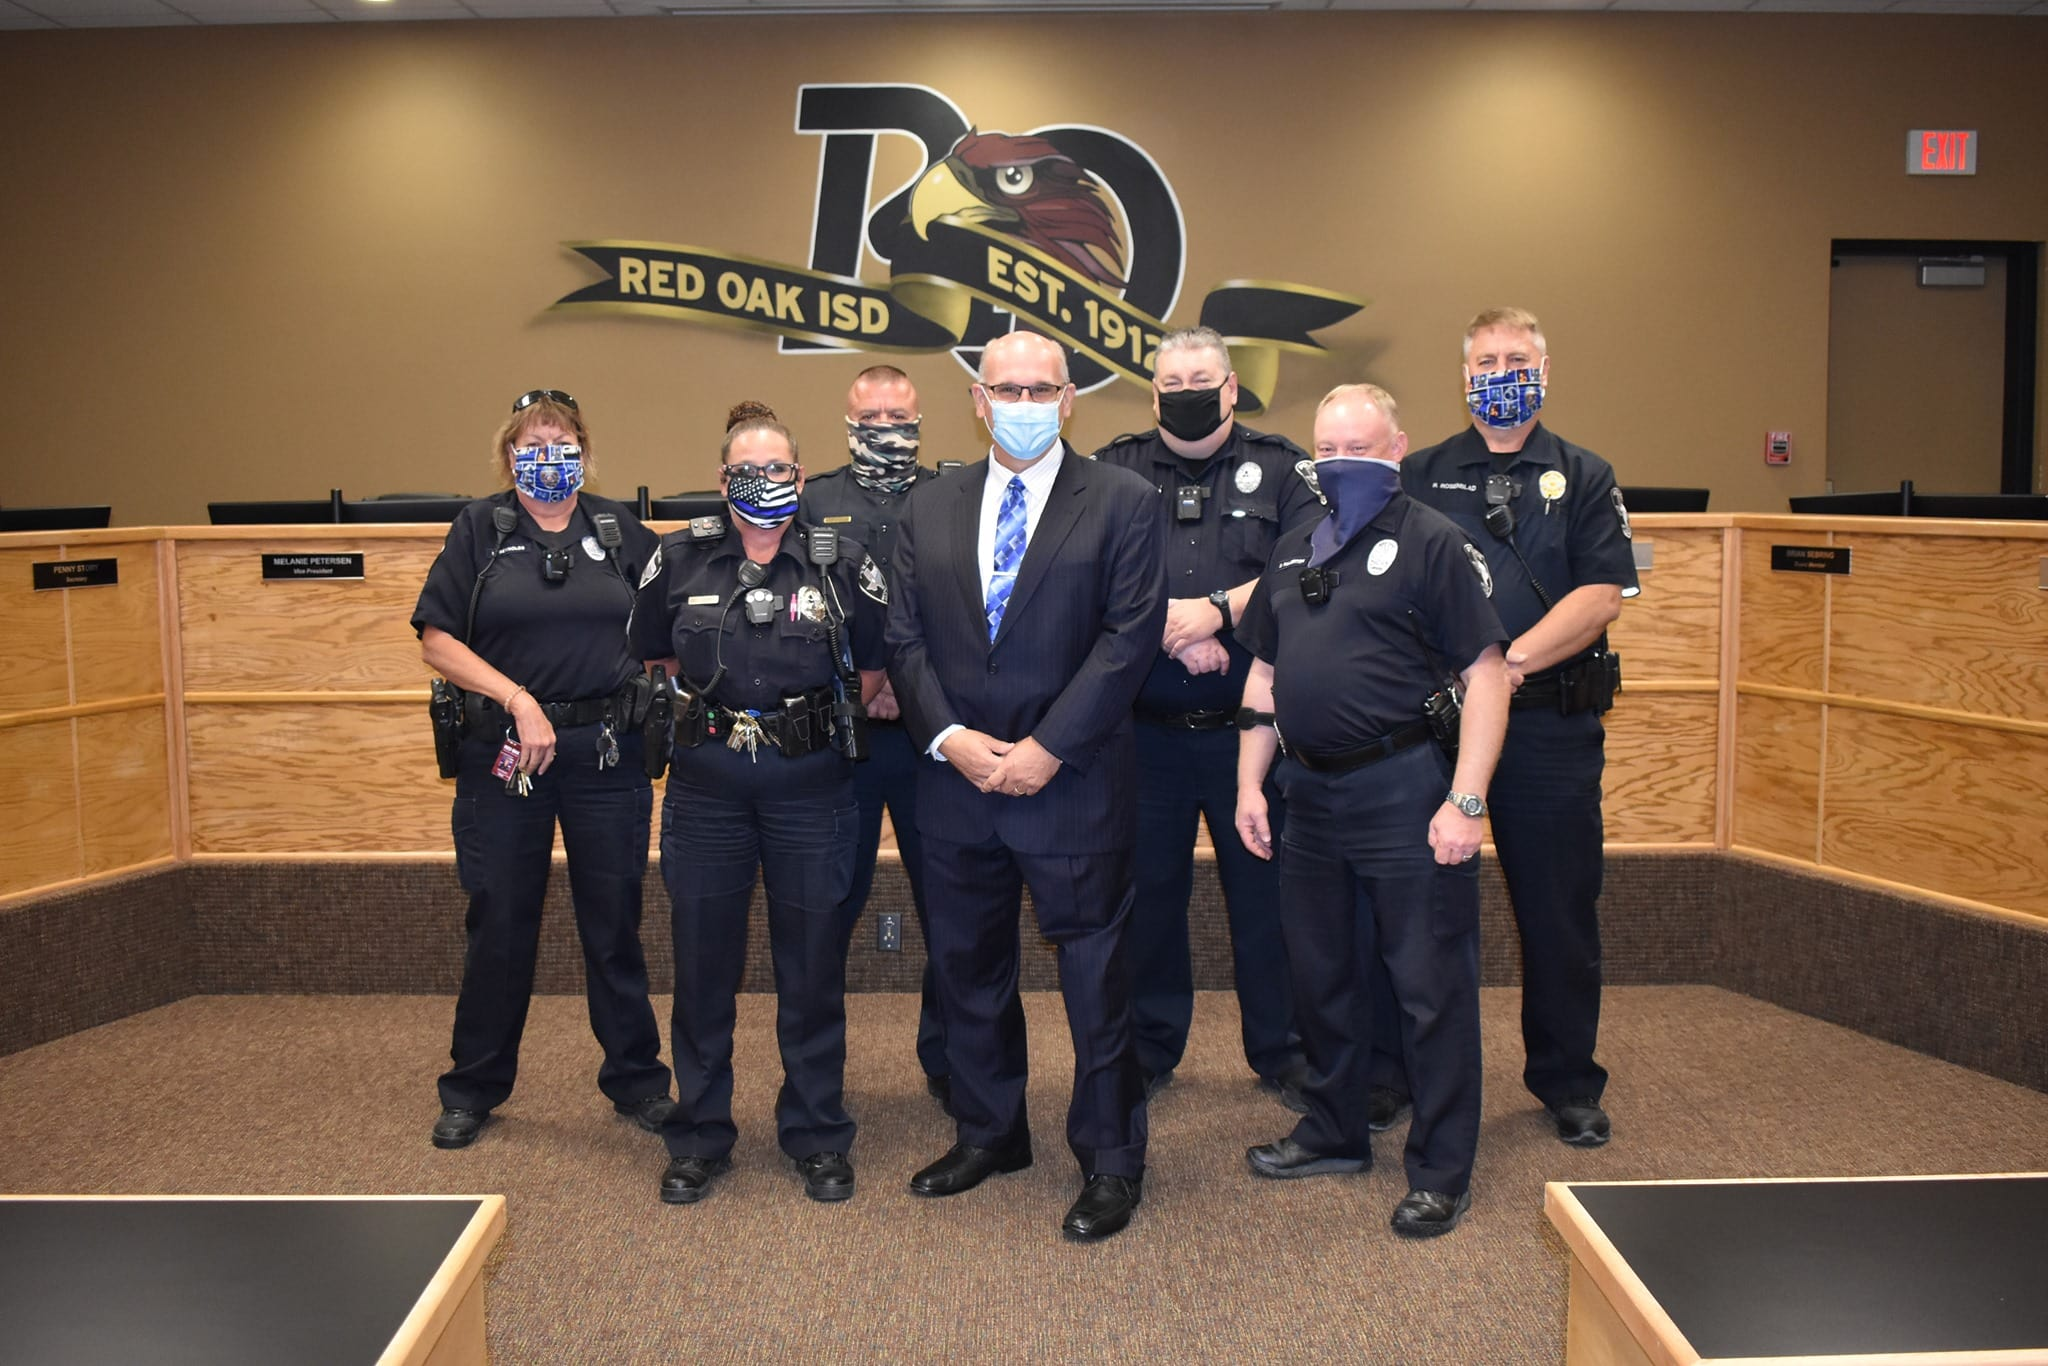 Red Oak ISD Police Officers